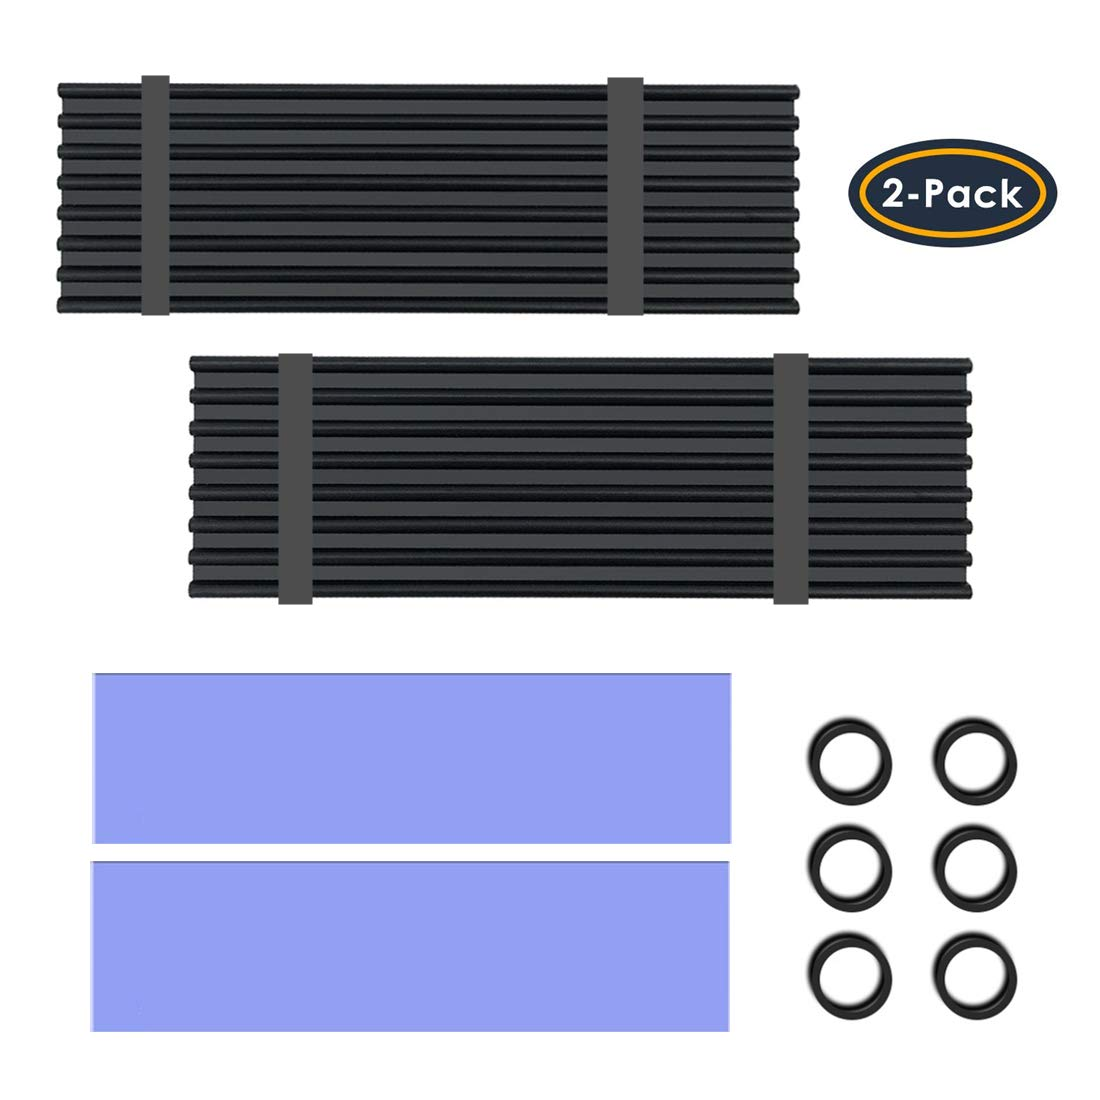 2 Pack M.2 NVMe Aluminum Heatsinks Cooler with Nano Silicone Thermal Pad